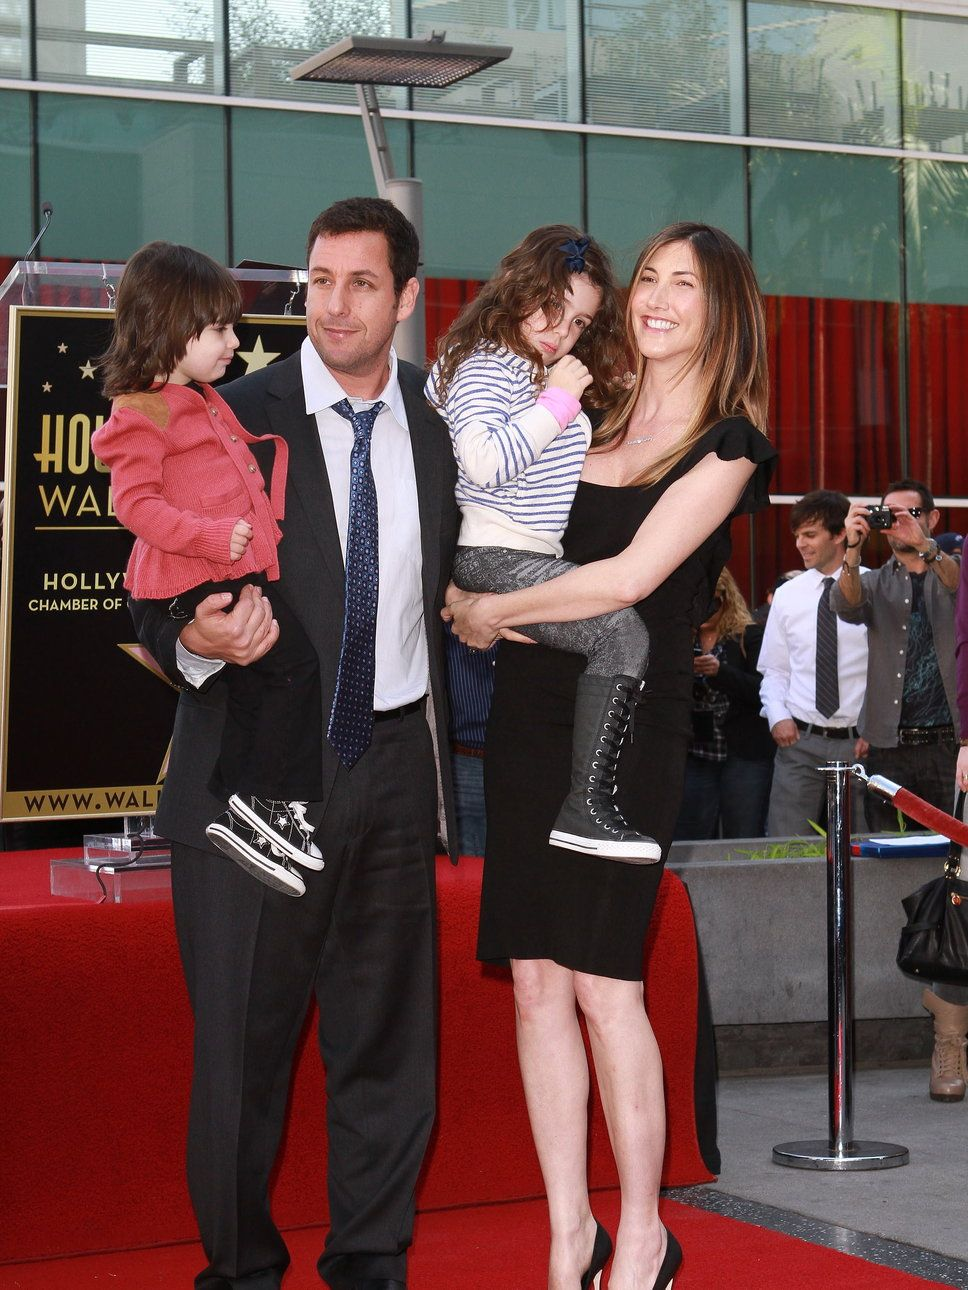 Adam Sandler with his wife and children walk of fame My